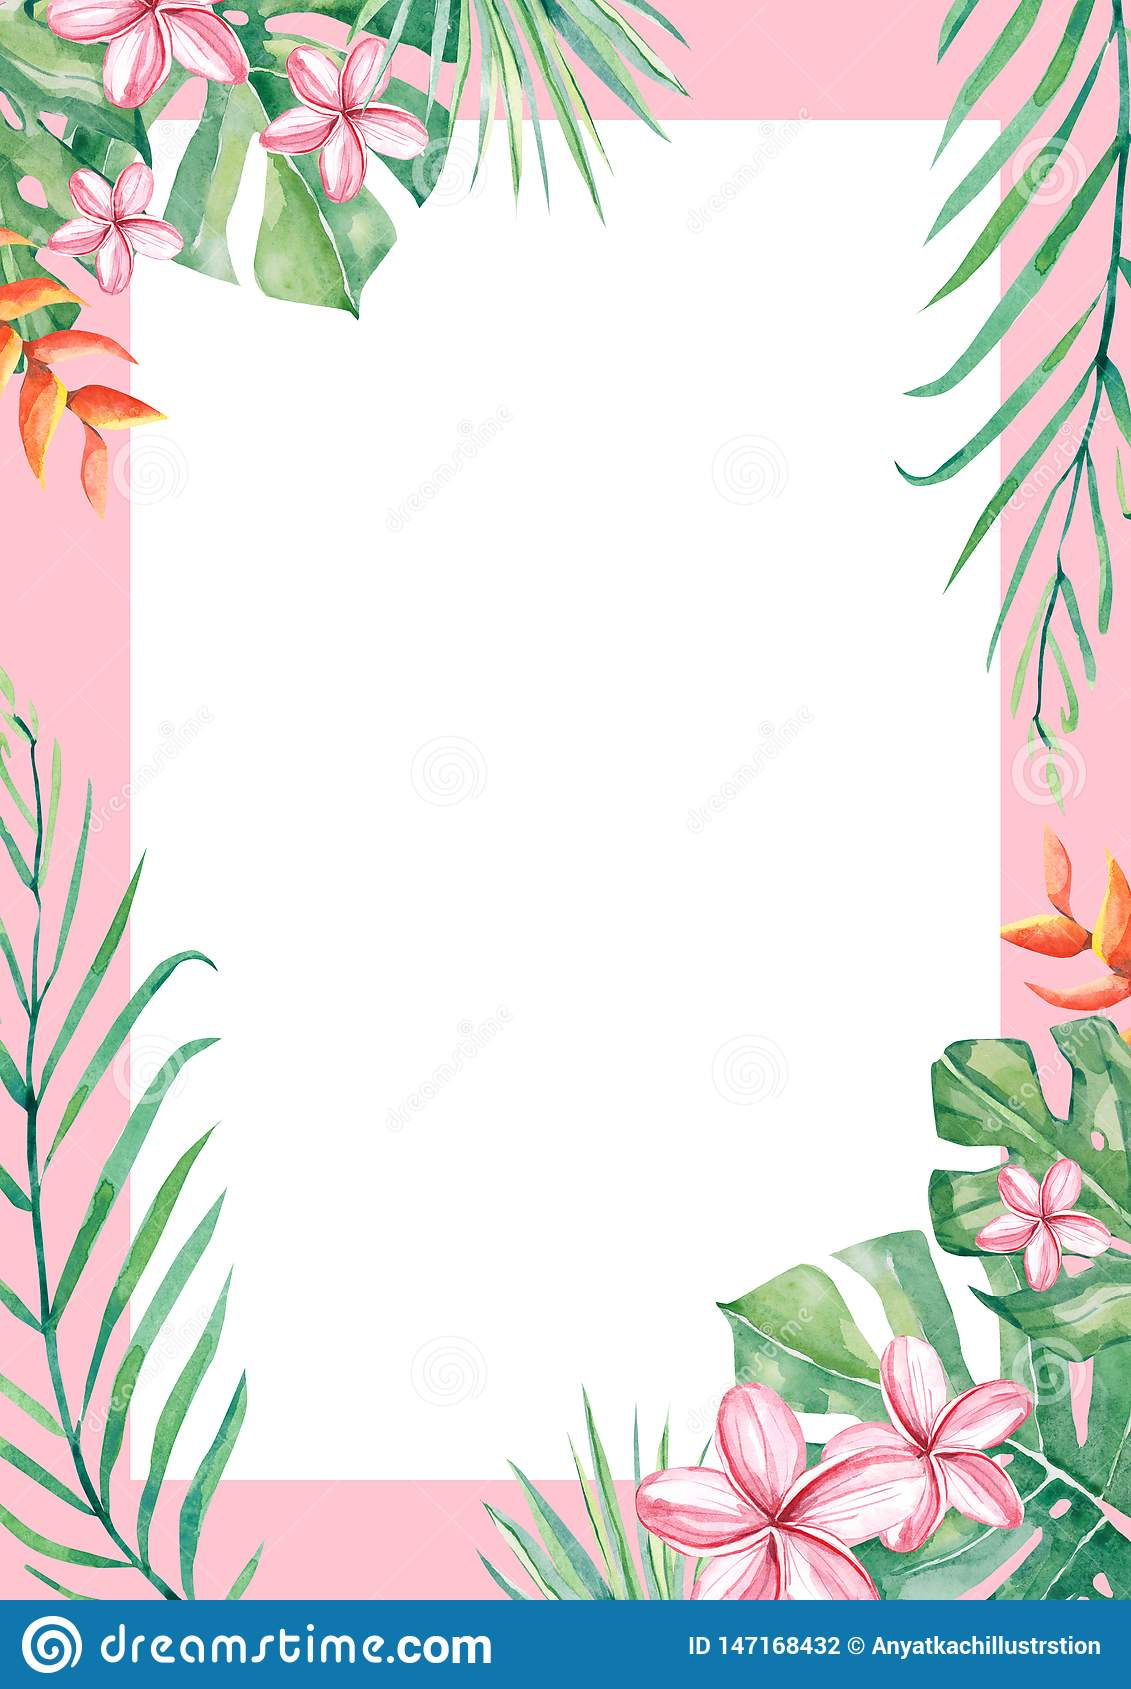 https www dreamstime com watercolor tropical flower leaf arrangement border frame wedding anniversary birthday invitations cards image147168432